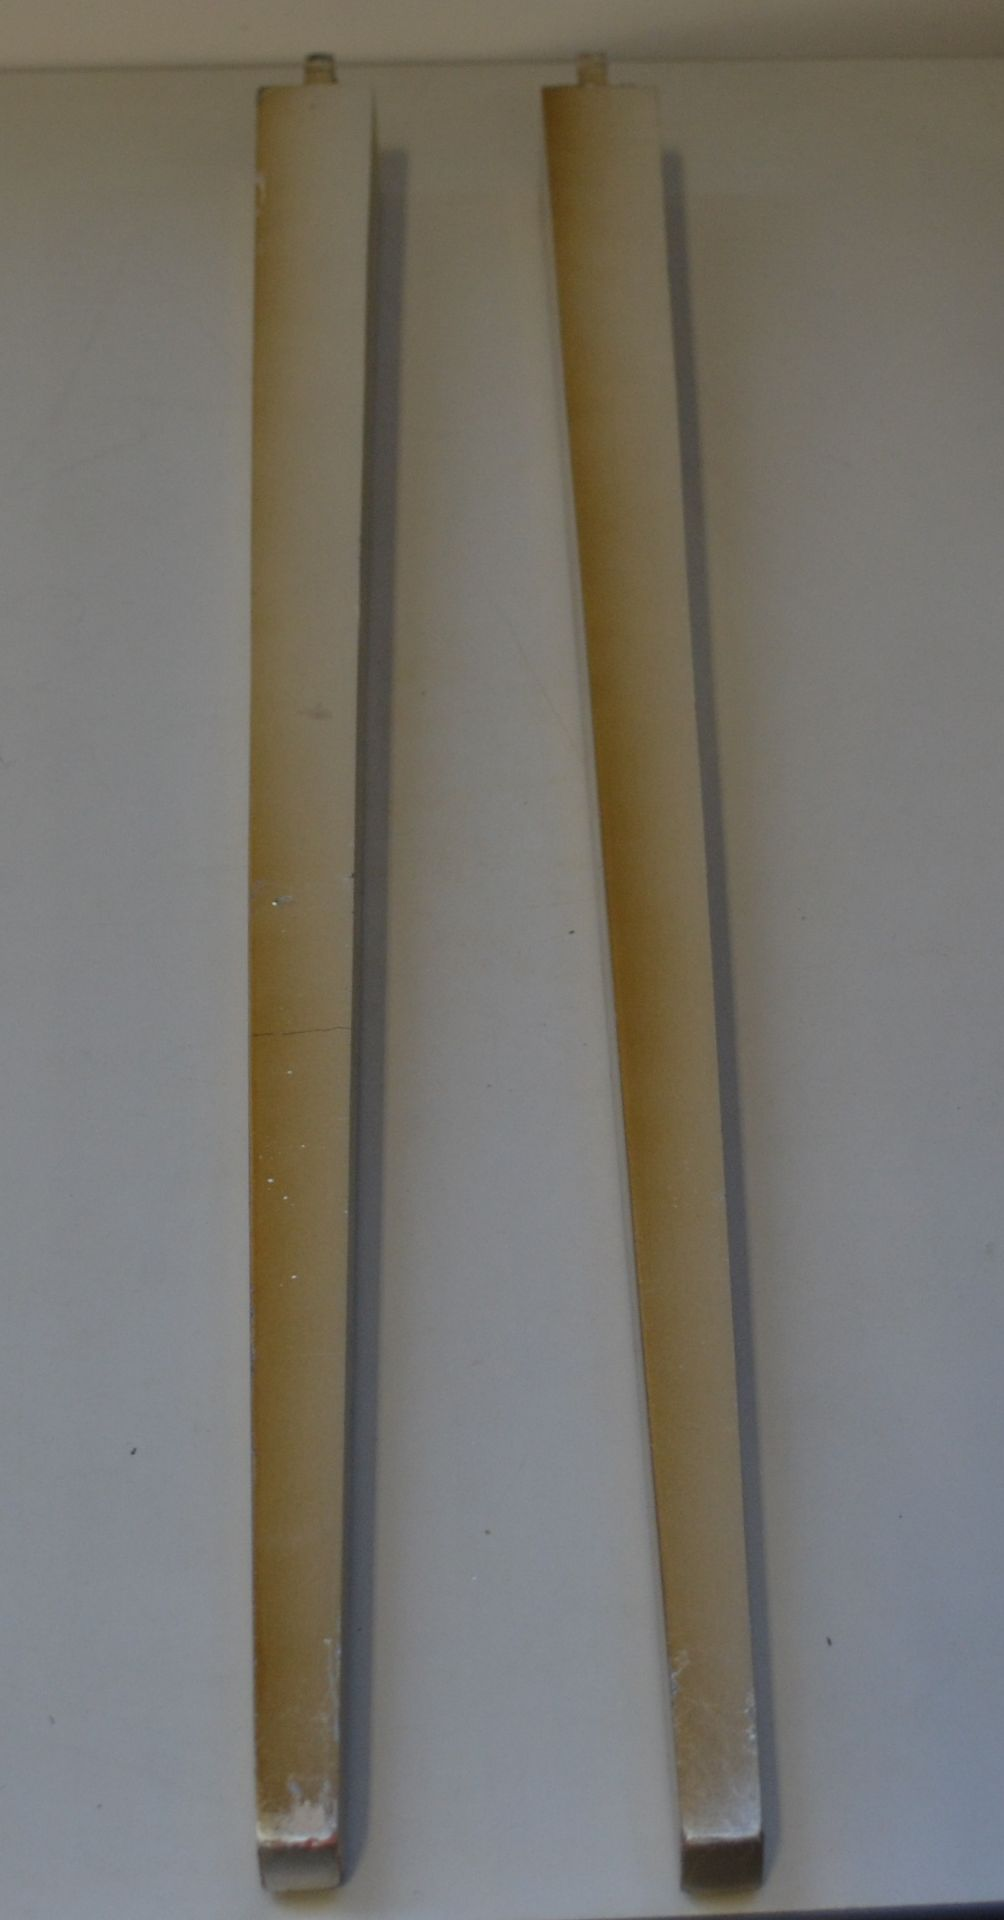 Lot 7400 - 1 x Buzzi & Buzzi Flag Wall Light Cover And Two Table Legs Gold - Ref J2198 - CL314